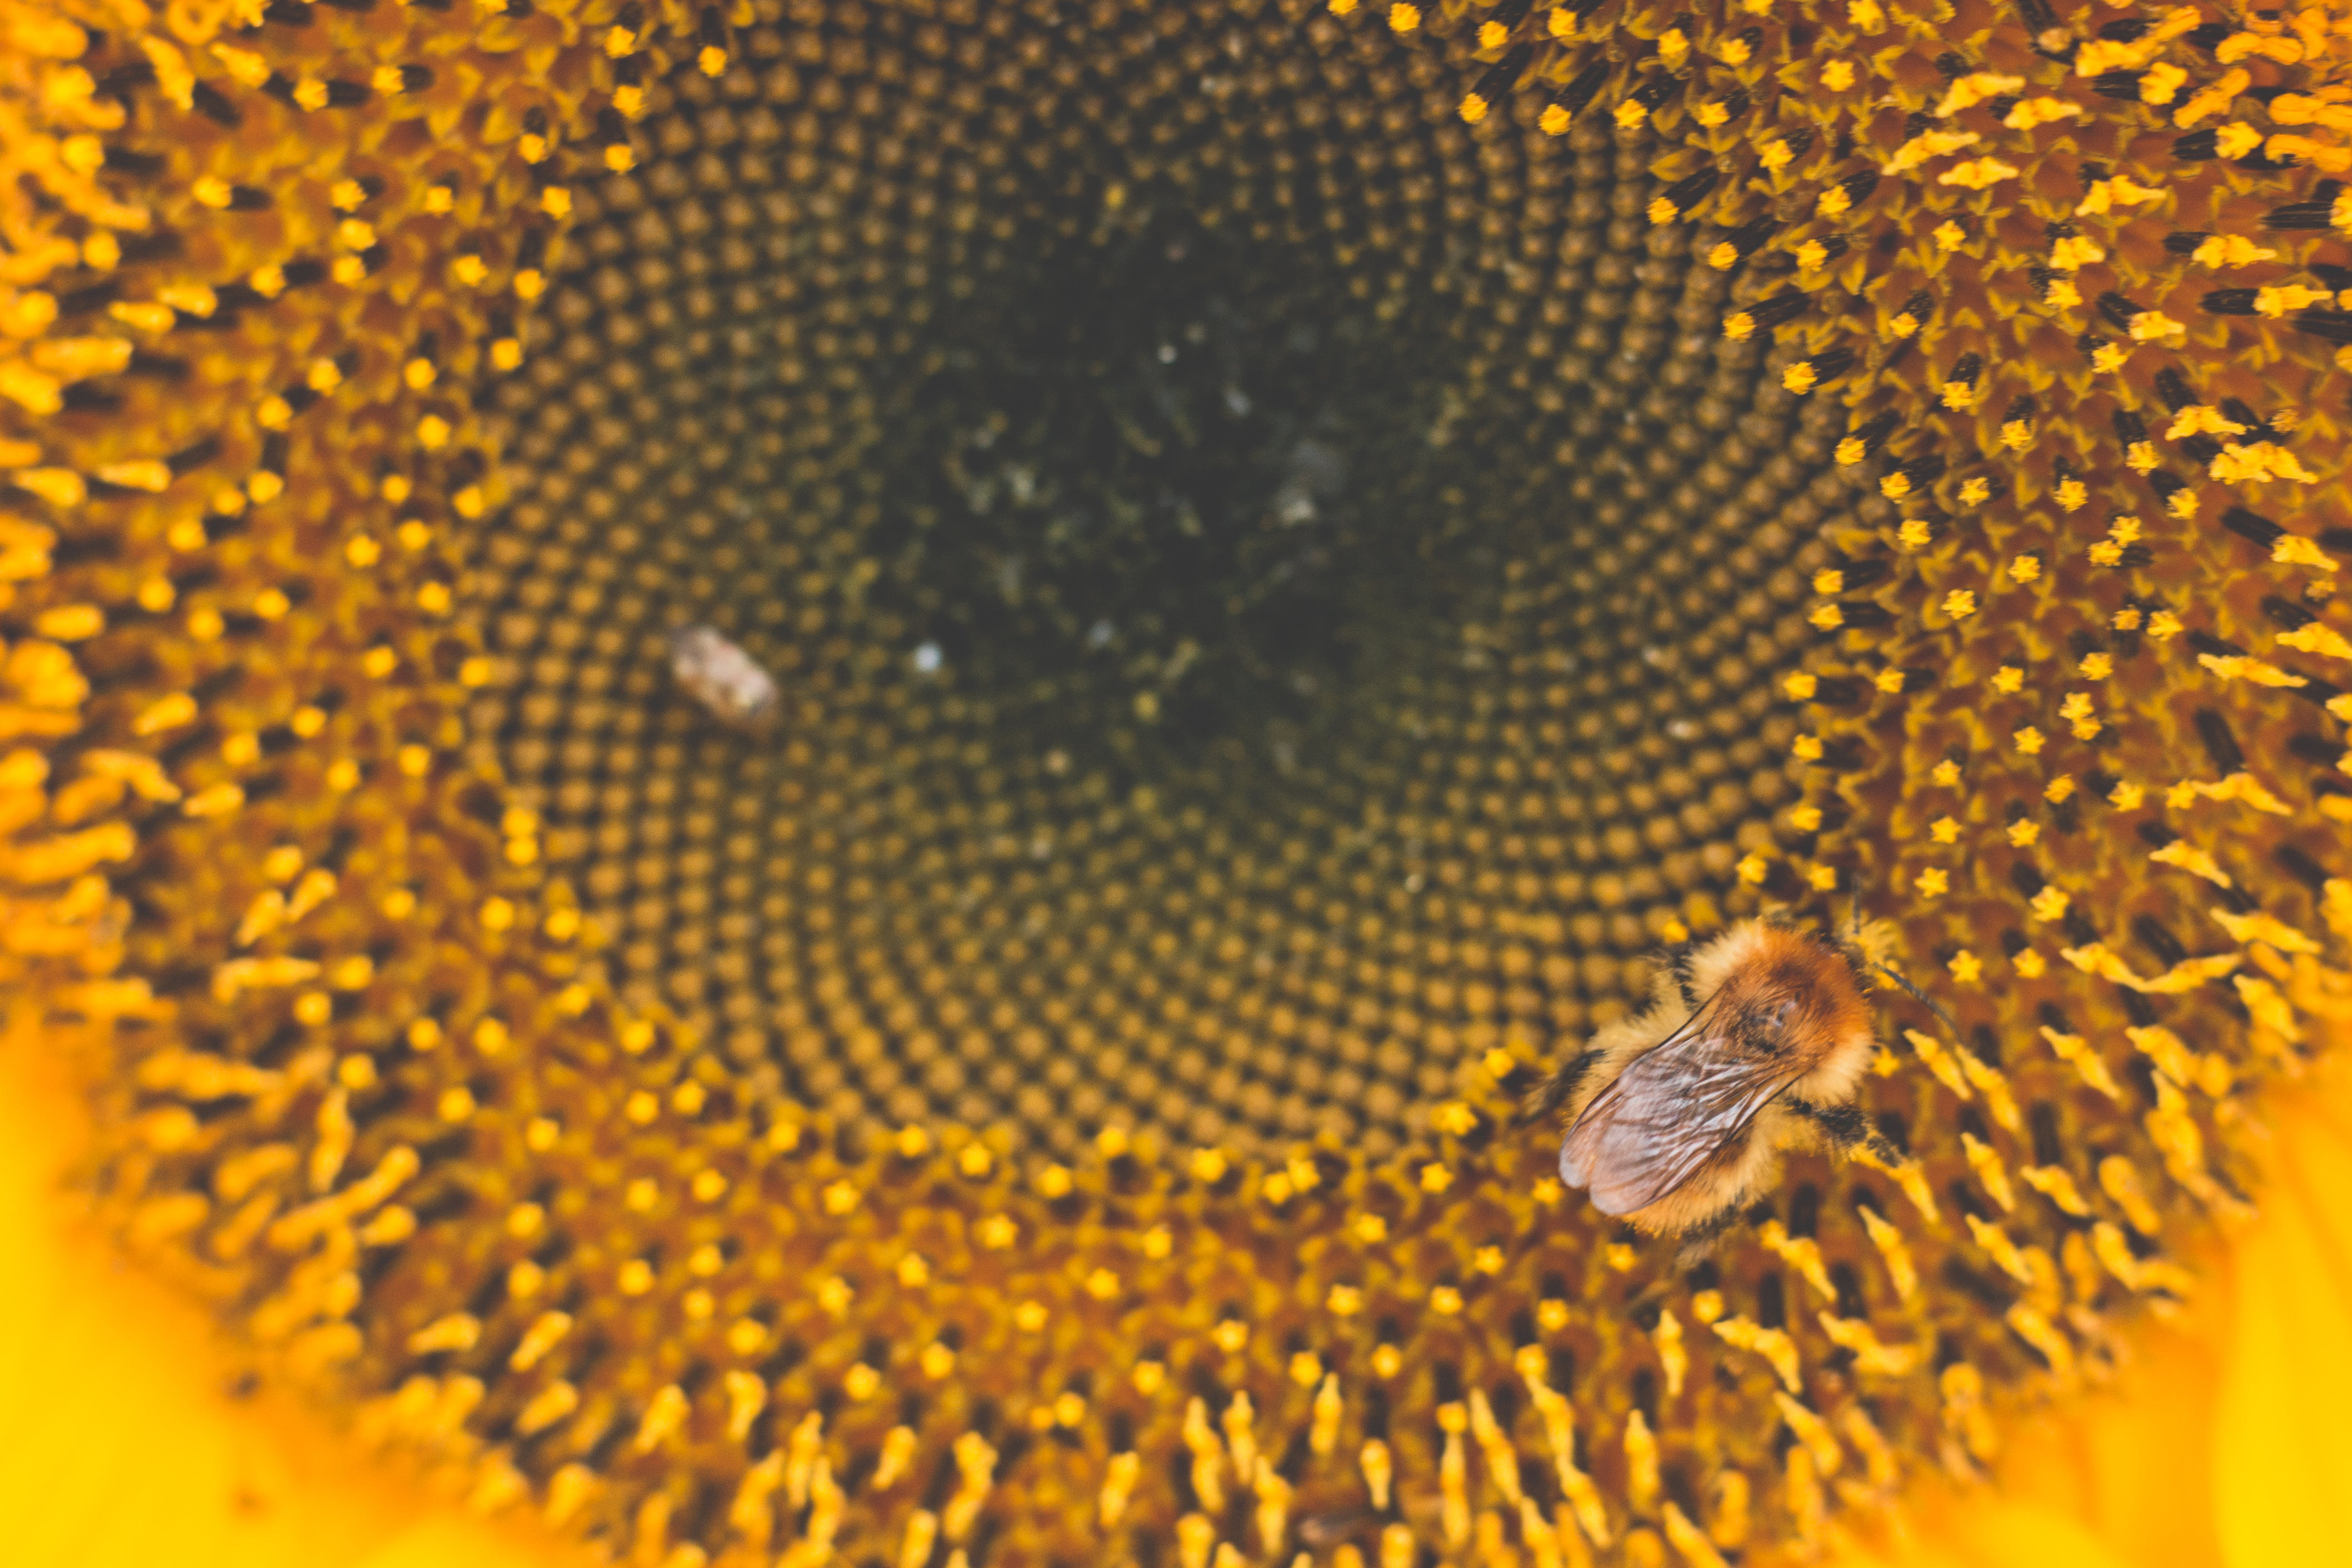 Honey Bee Perched on Sunflower Macro Photography